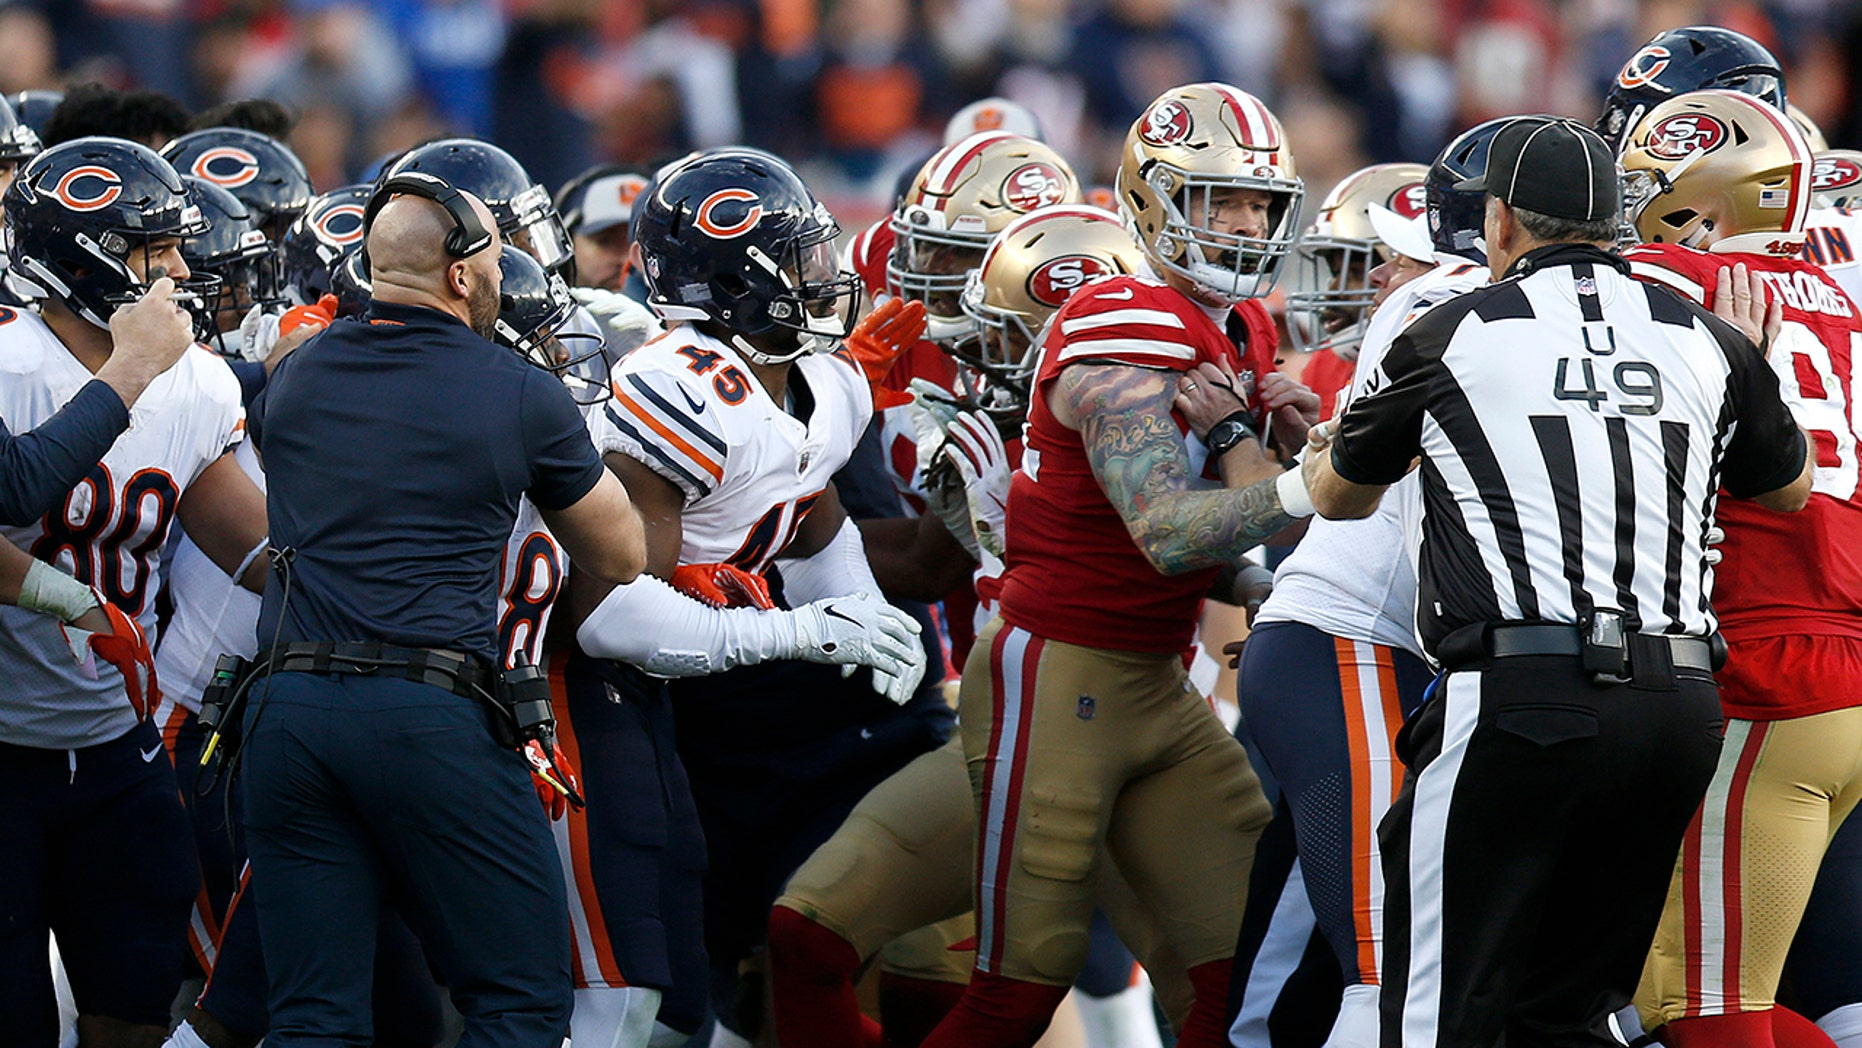 Richard Sherman, Others Ejected After Bears-49ers Brawl